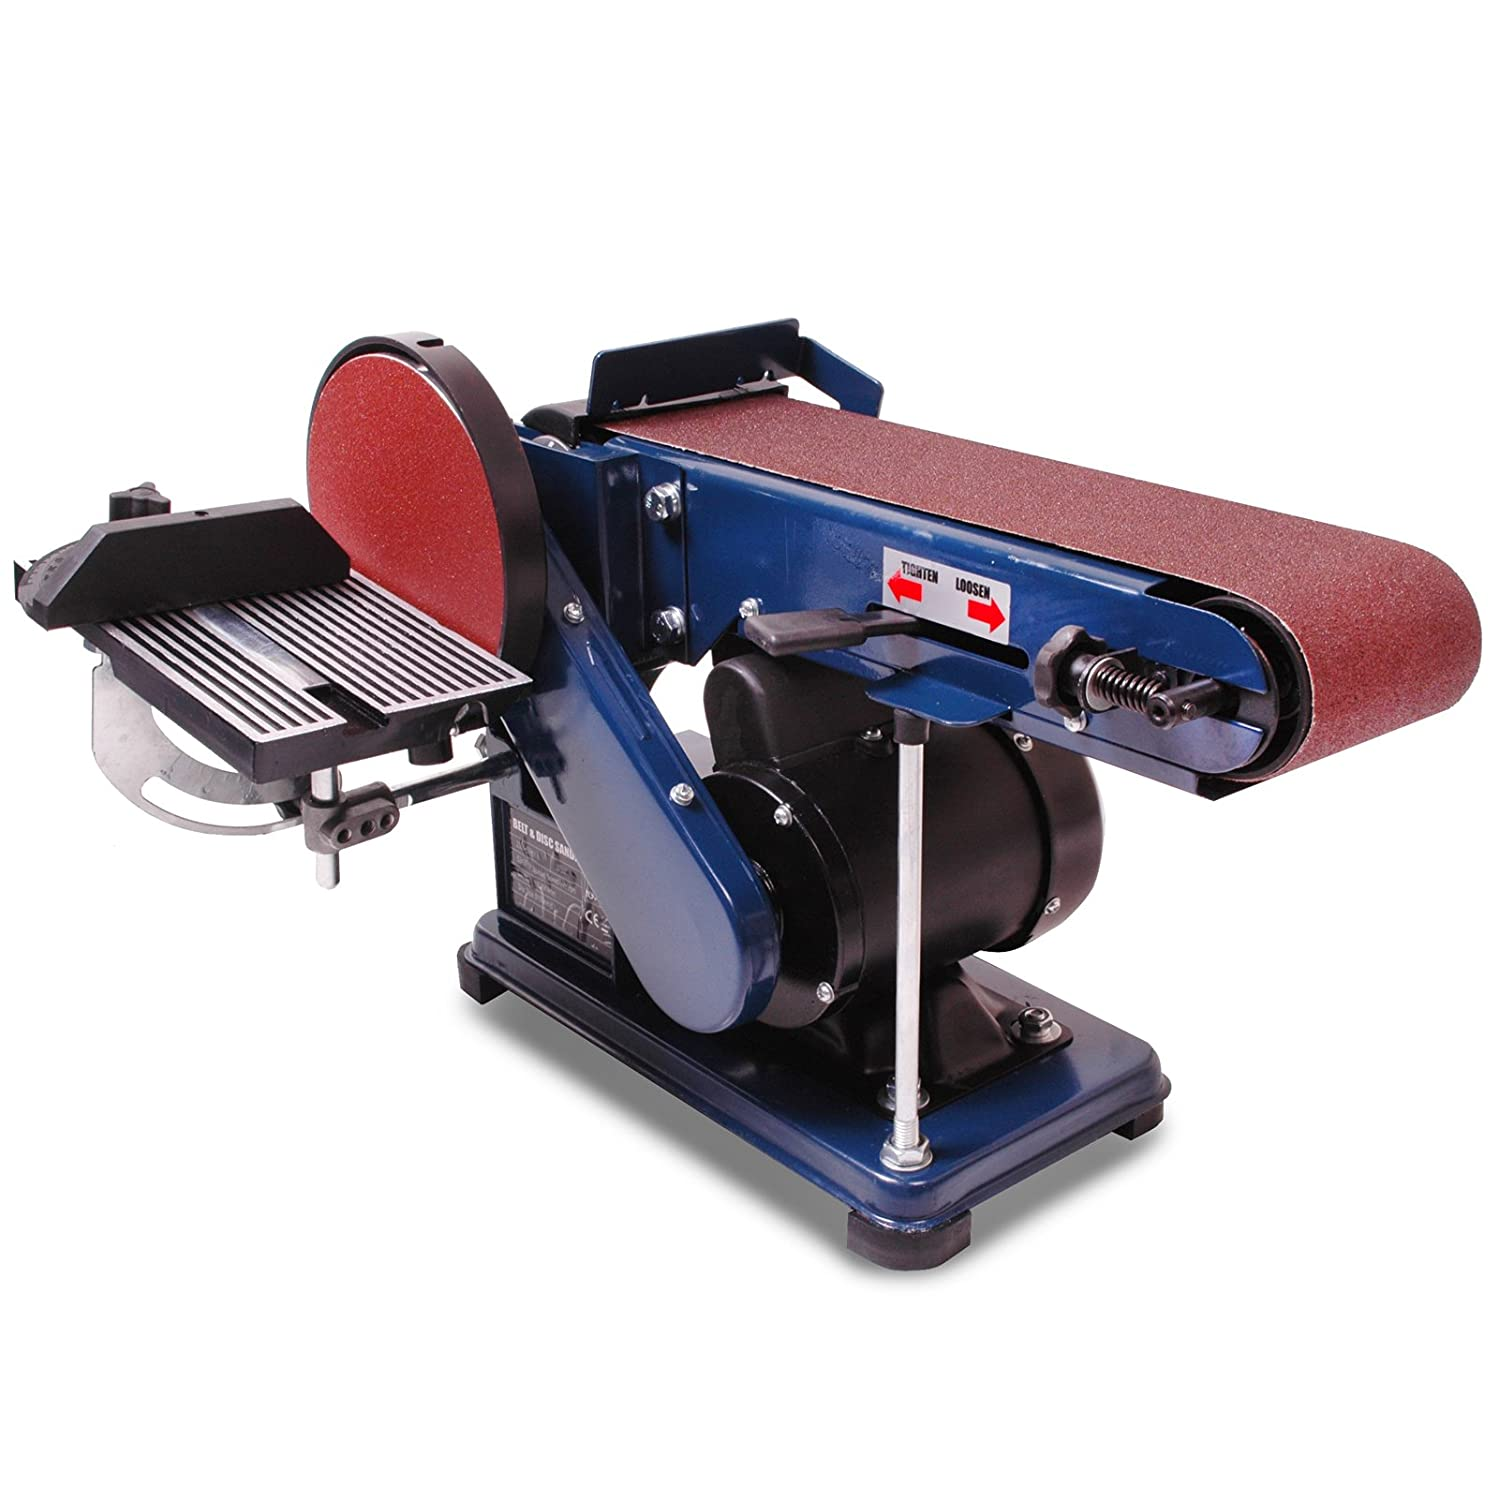 Heavy Duty Electric 4 Inch Belt 6 Inch Circular Disc Wood Plastic Sanding Workshop Carpentry Power Sand Sander Machine XXR Tools